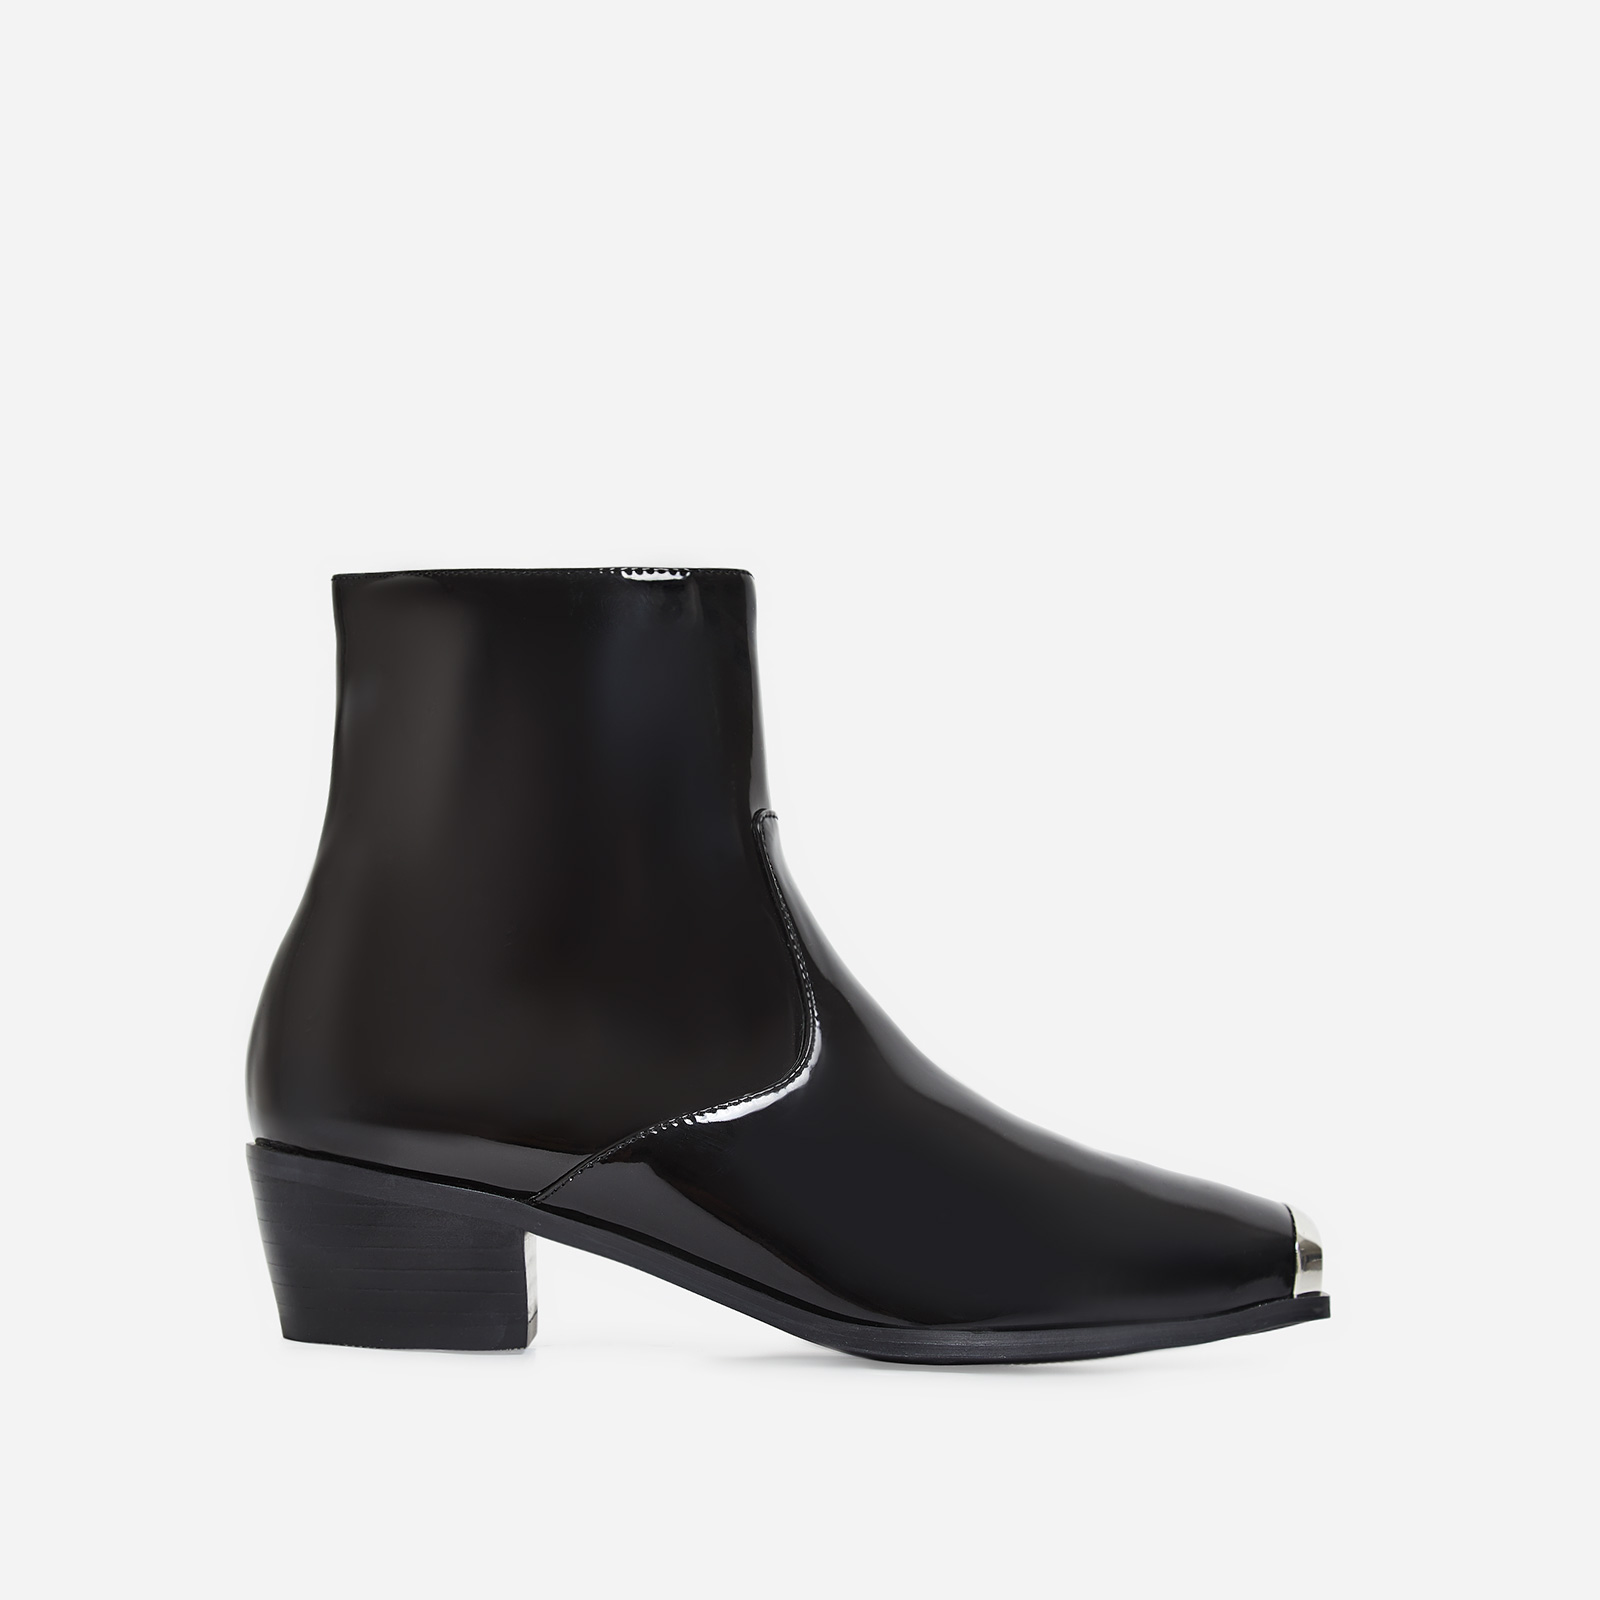 Tris Toe Cap Western Ankle Boot In Black Patent